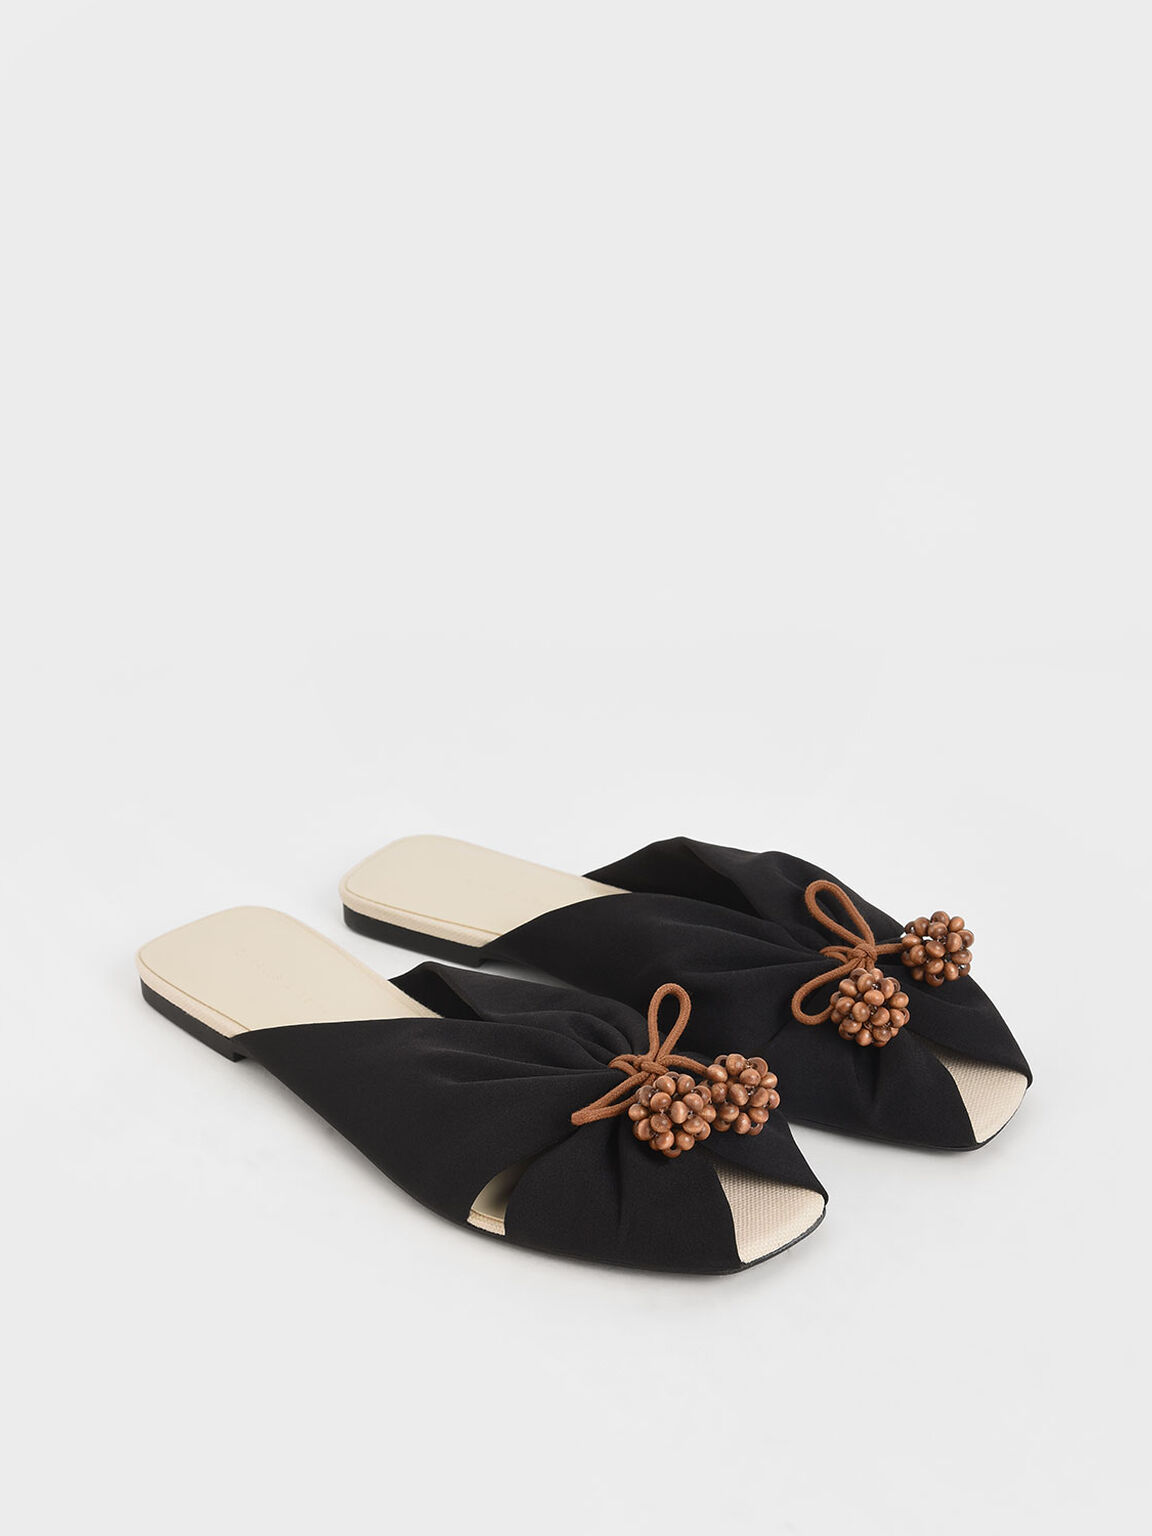 Cherry Embellished Peep-Toe Slide Sandals, Black, hi-res